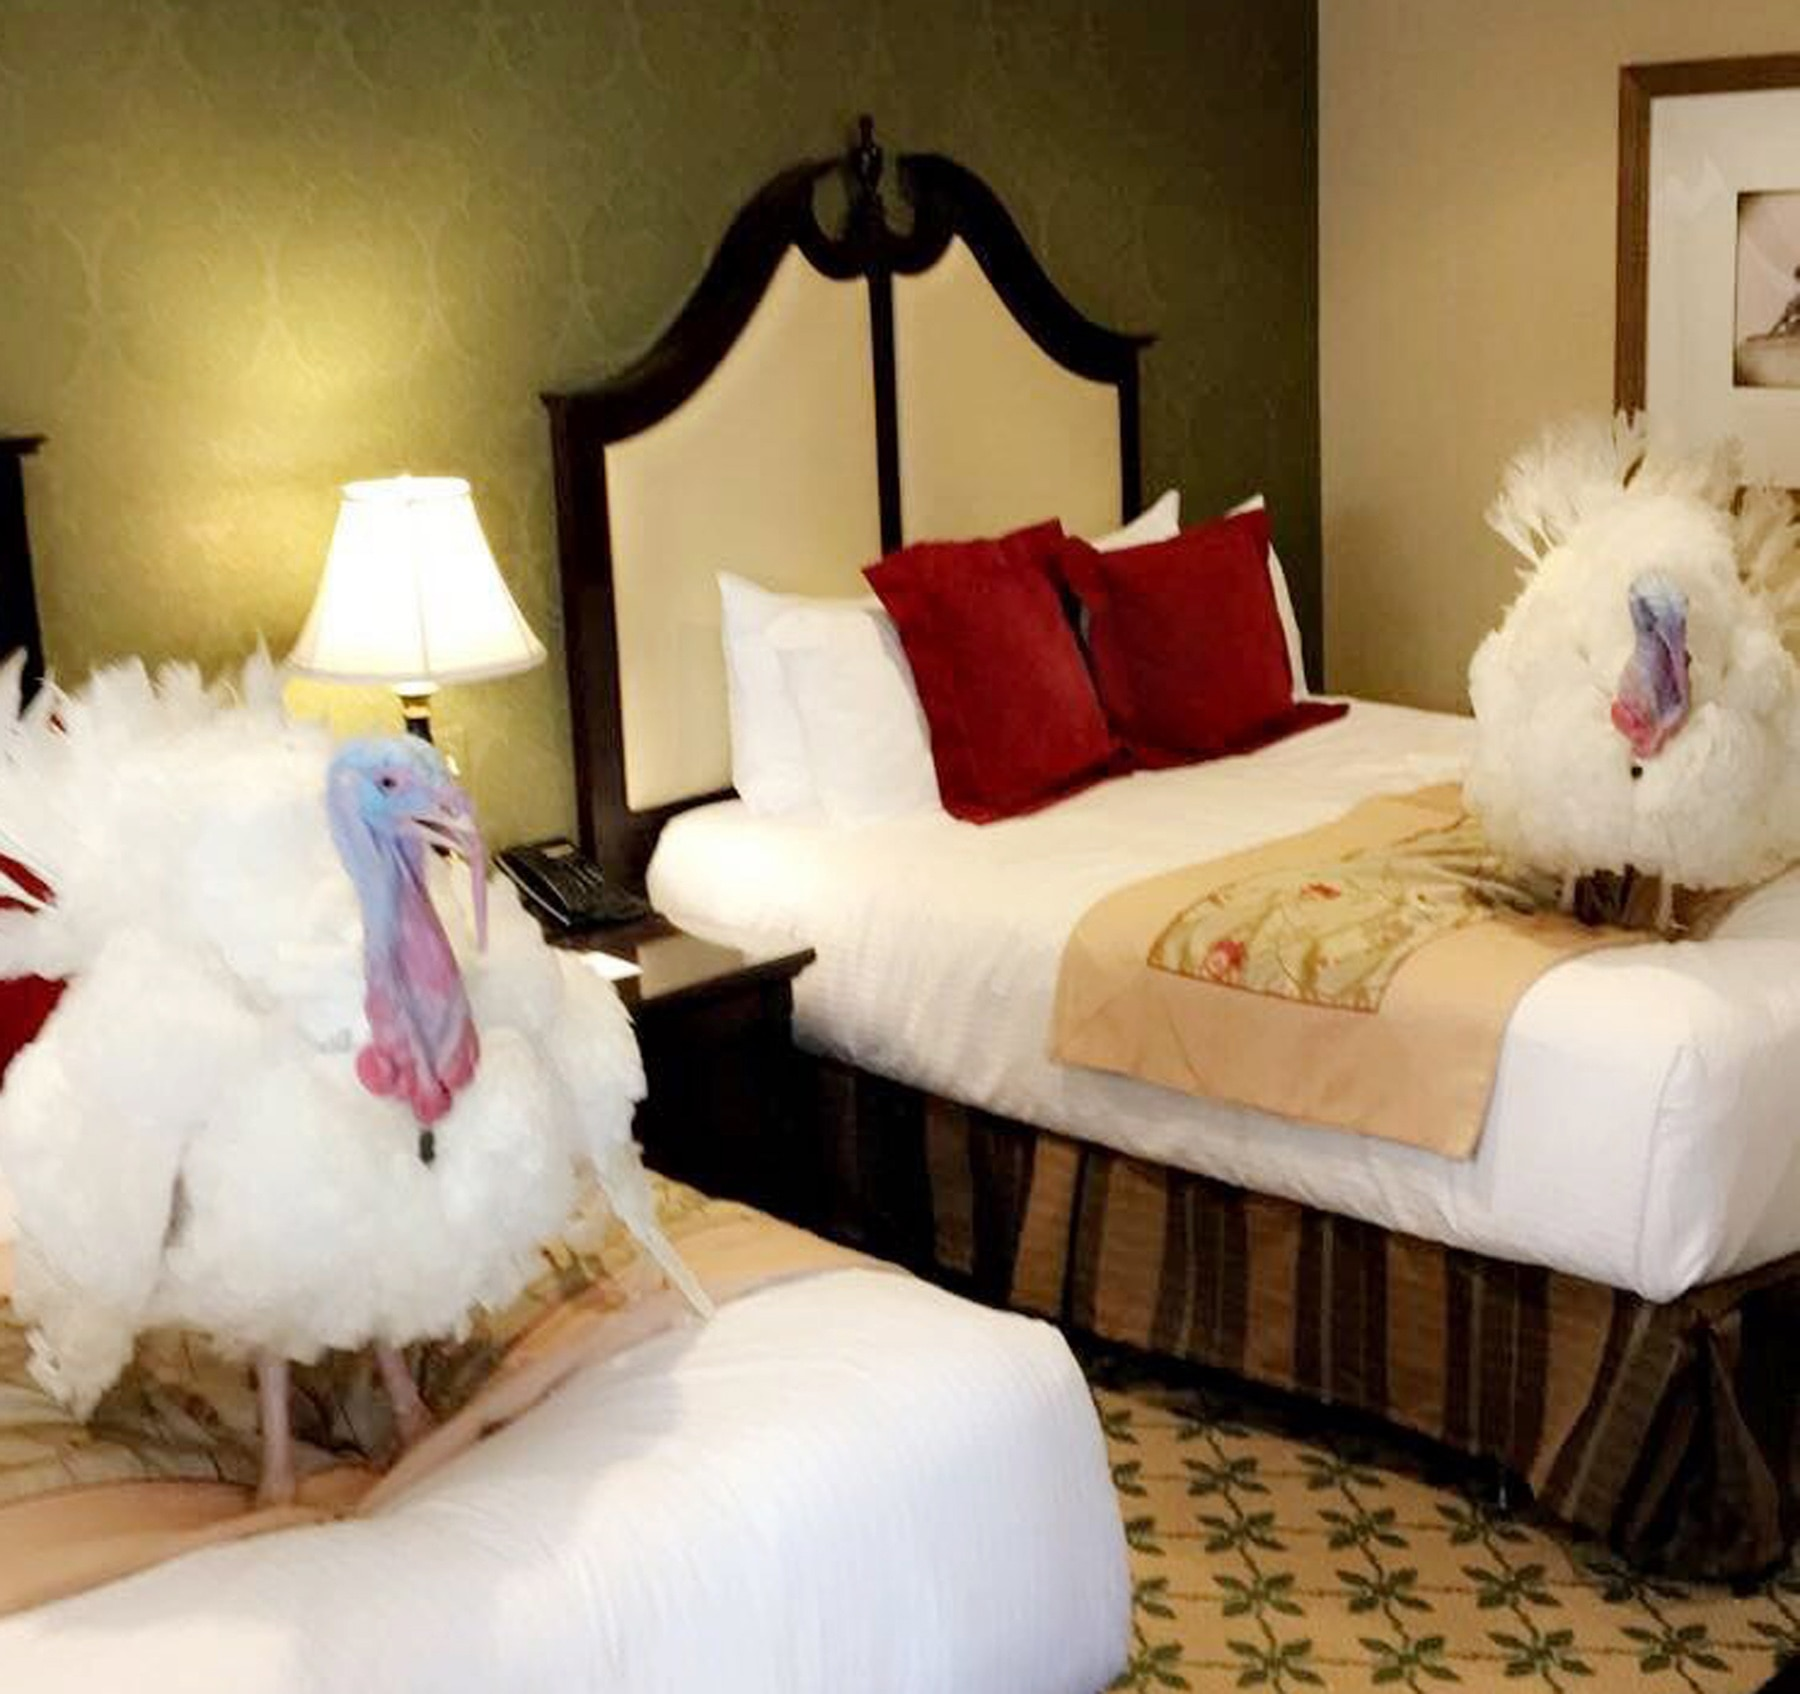 Two turkeys standing on hotel beds (White House via AP Images)